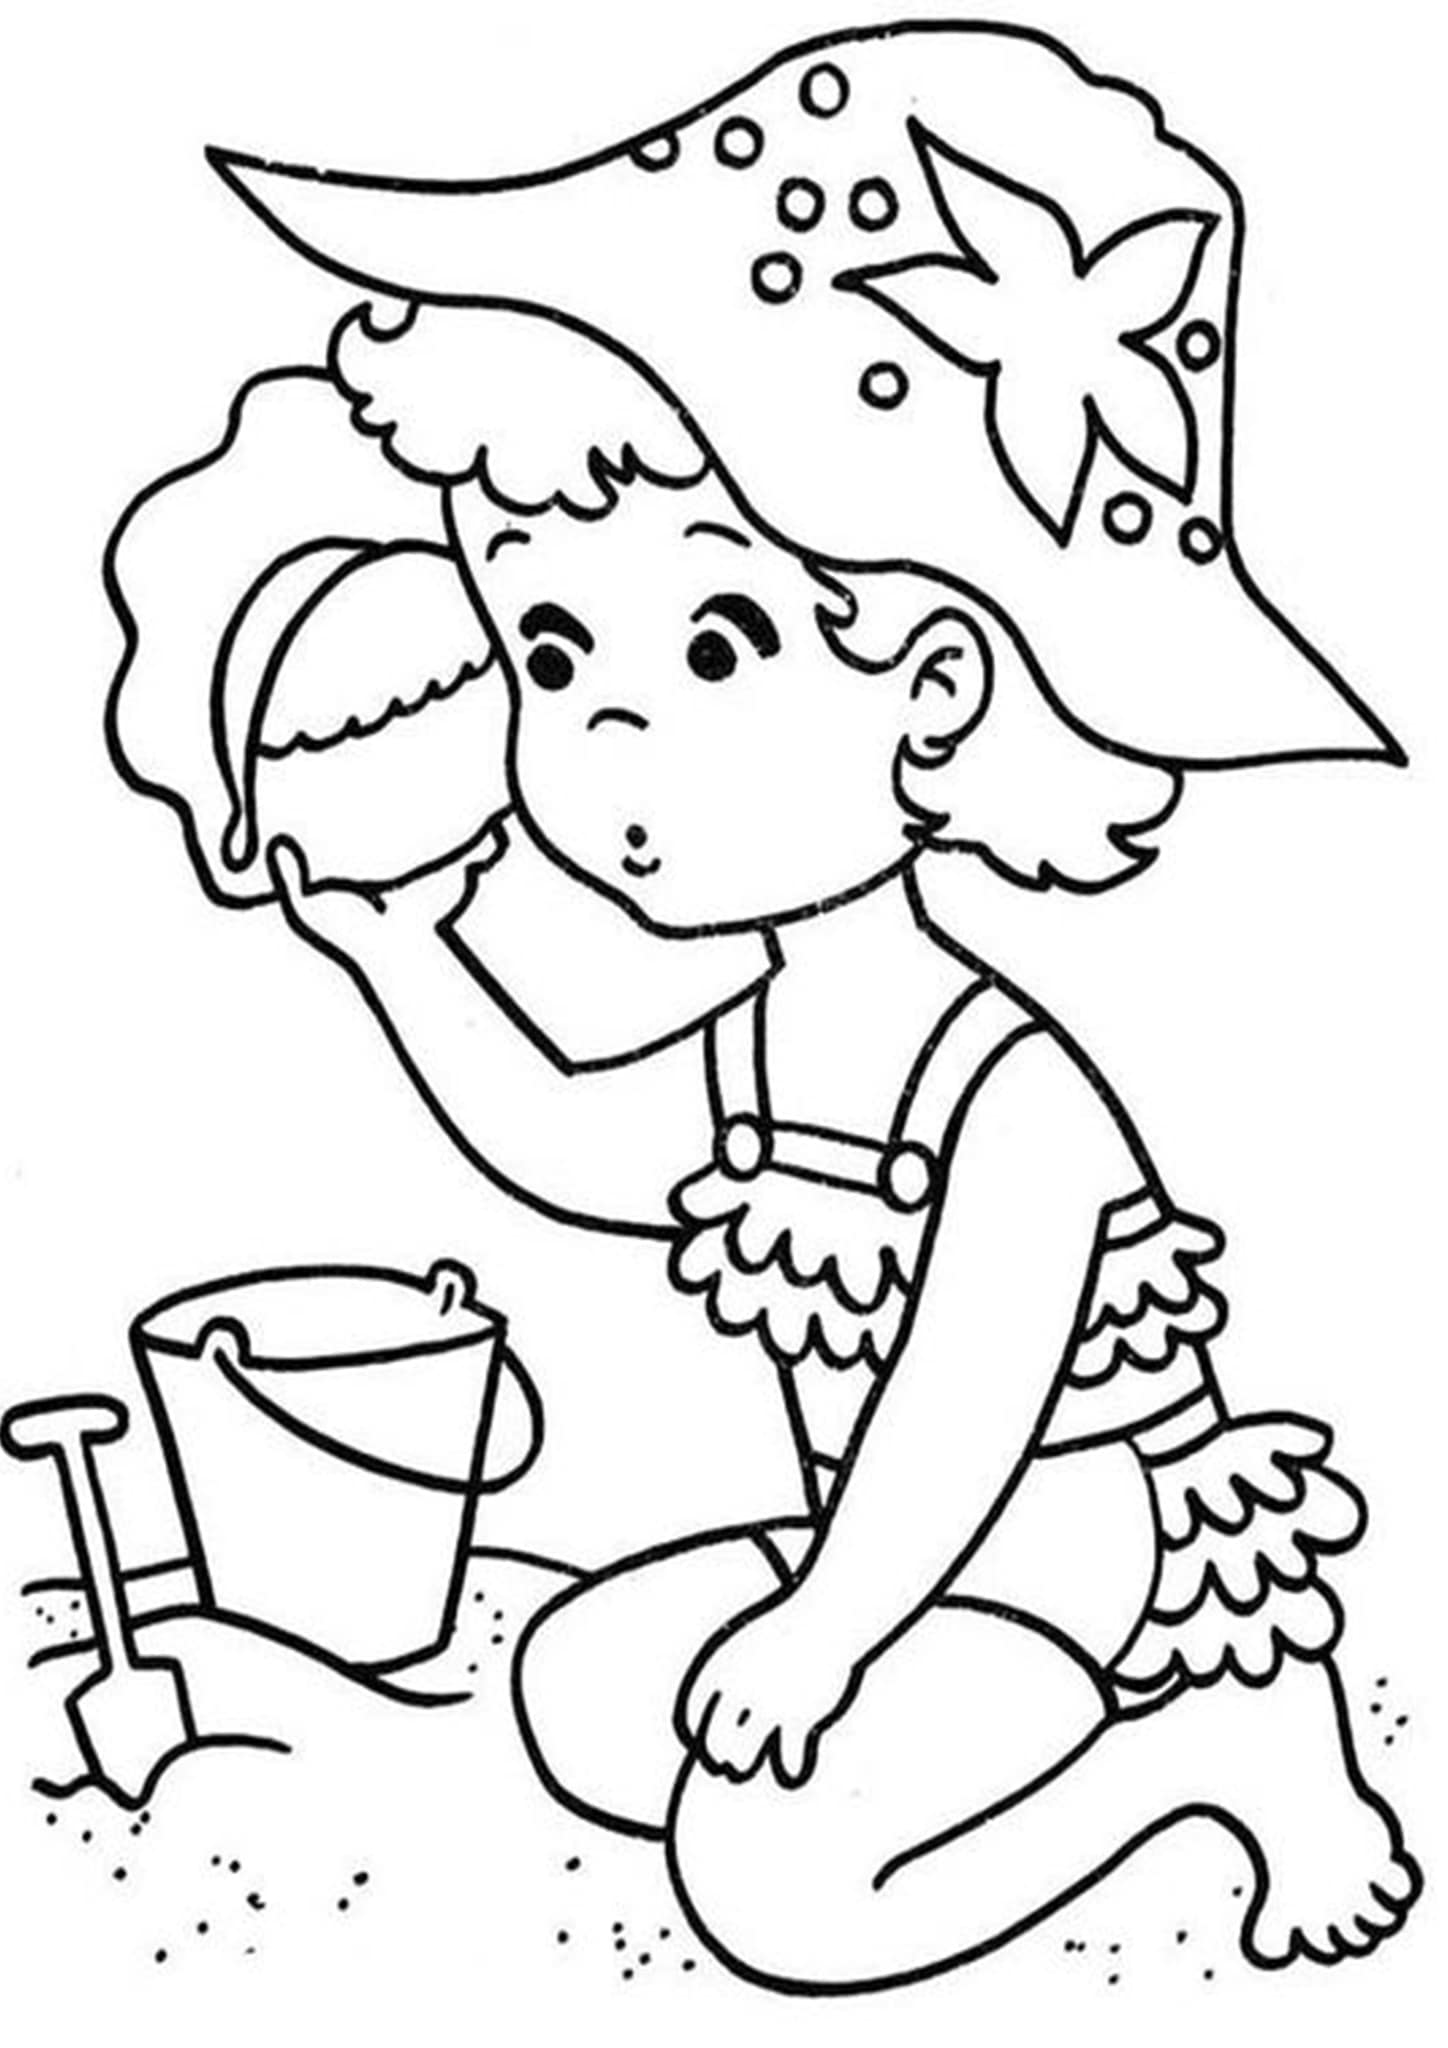 summer coloring sheets summer coloring pages coloringrocks summer sheets coloring